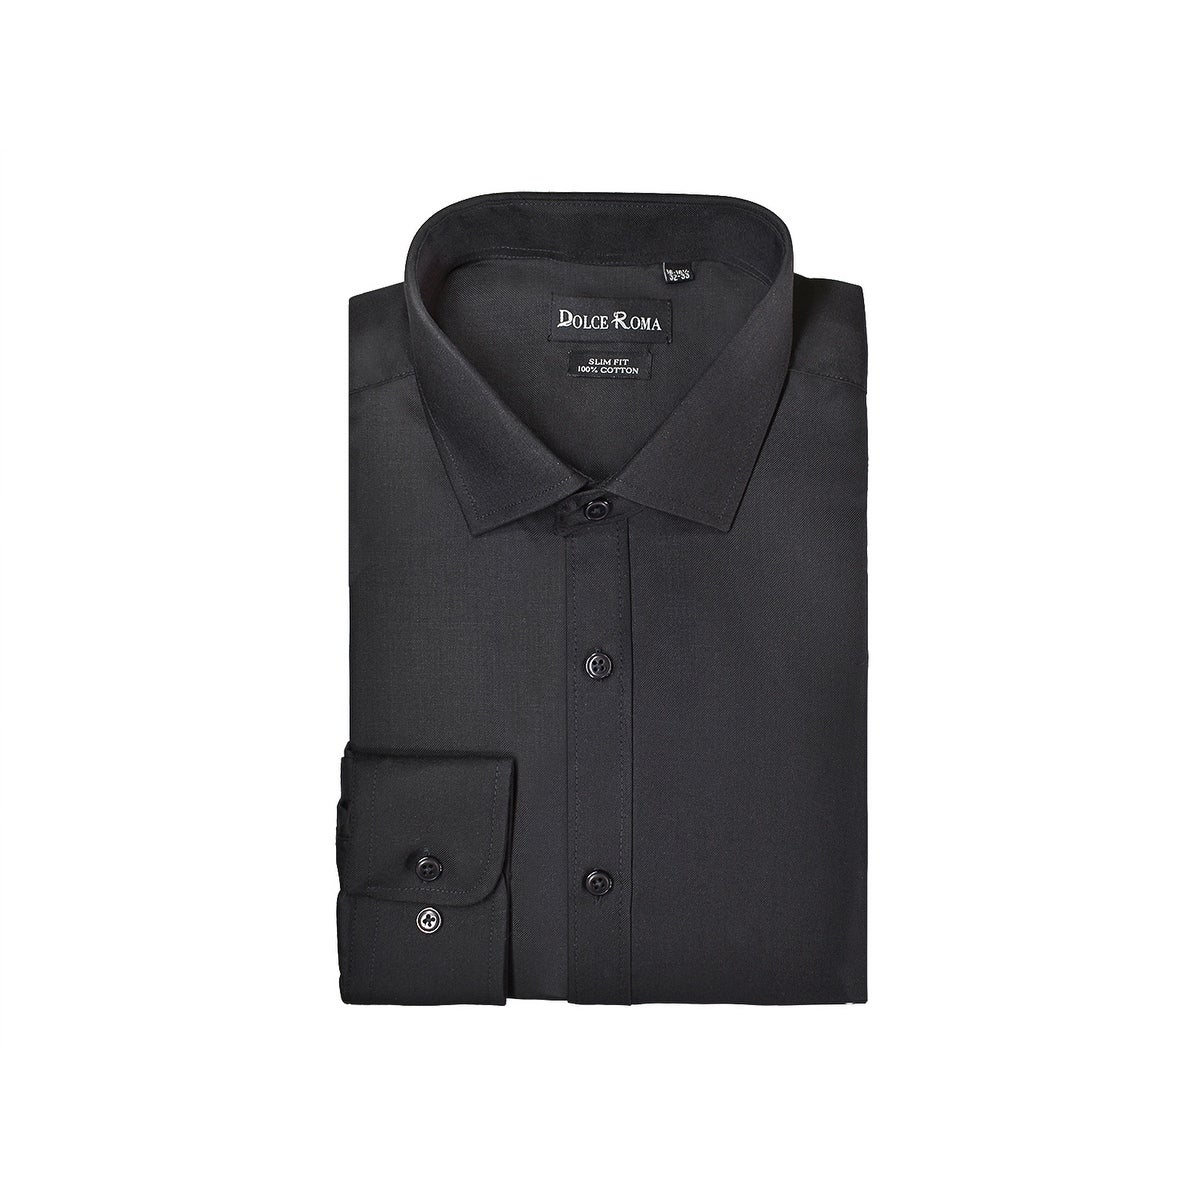 b4c2e4dd3 Shop Dolce Roma %100 Cotton Men's Dress Dress Shirt - Free Shipping On  Orders Over $45 - Overstock - 20271315